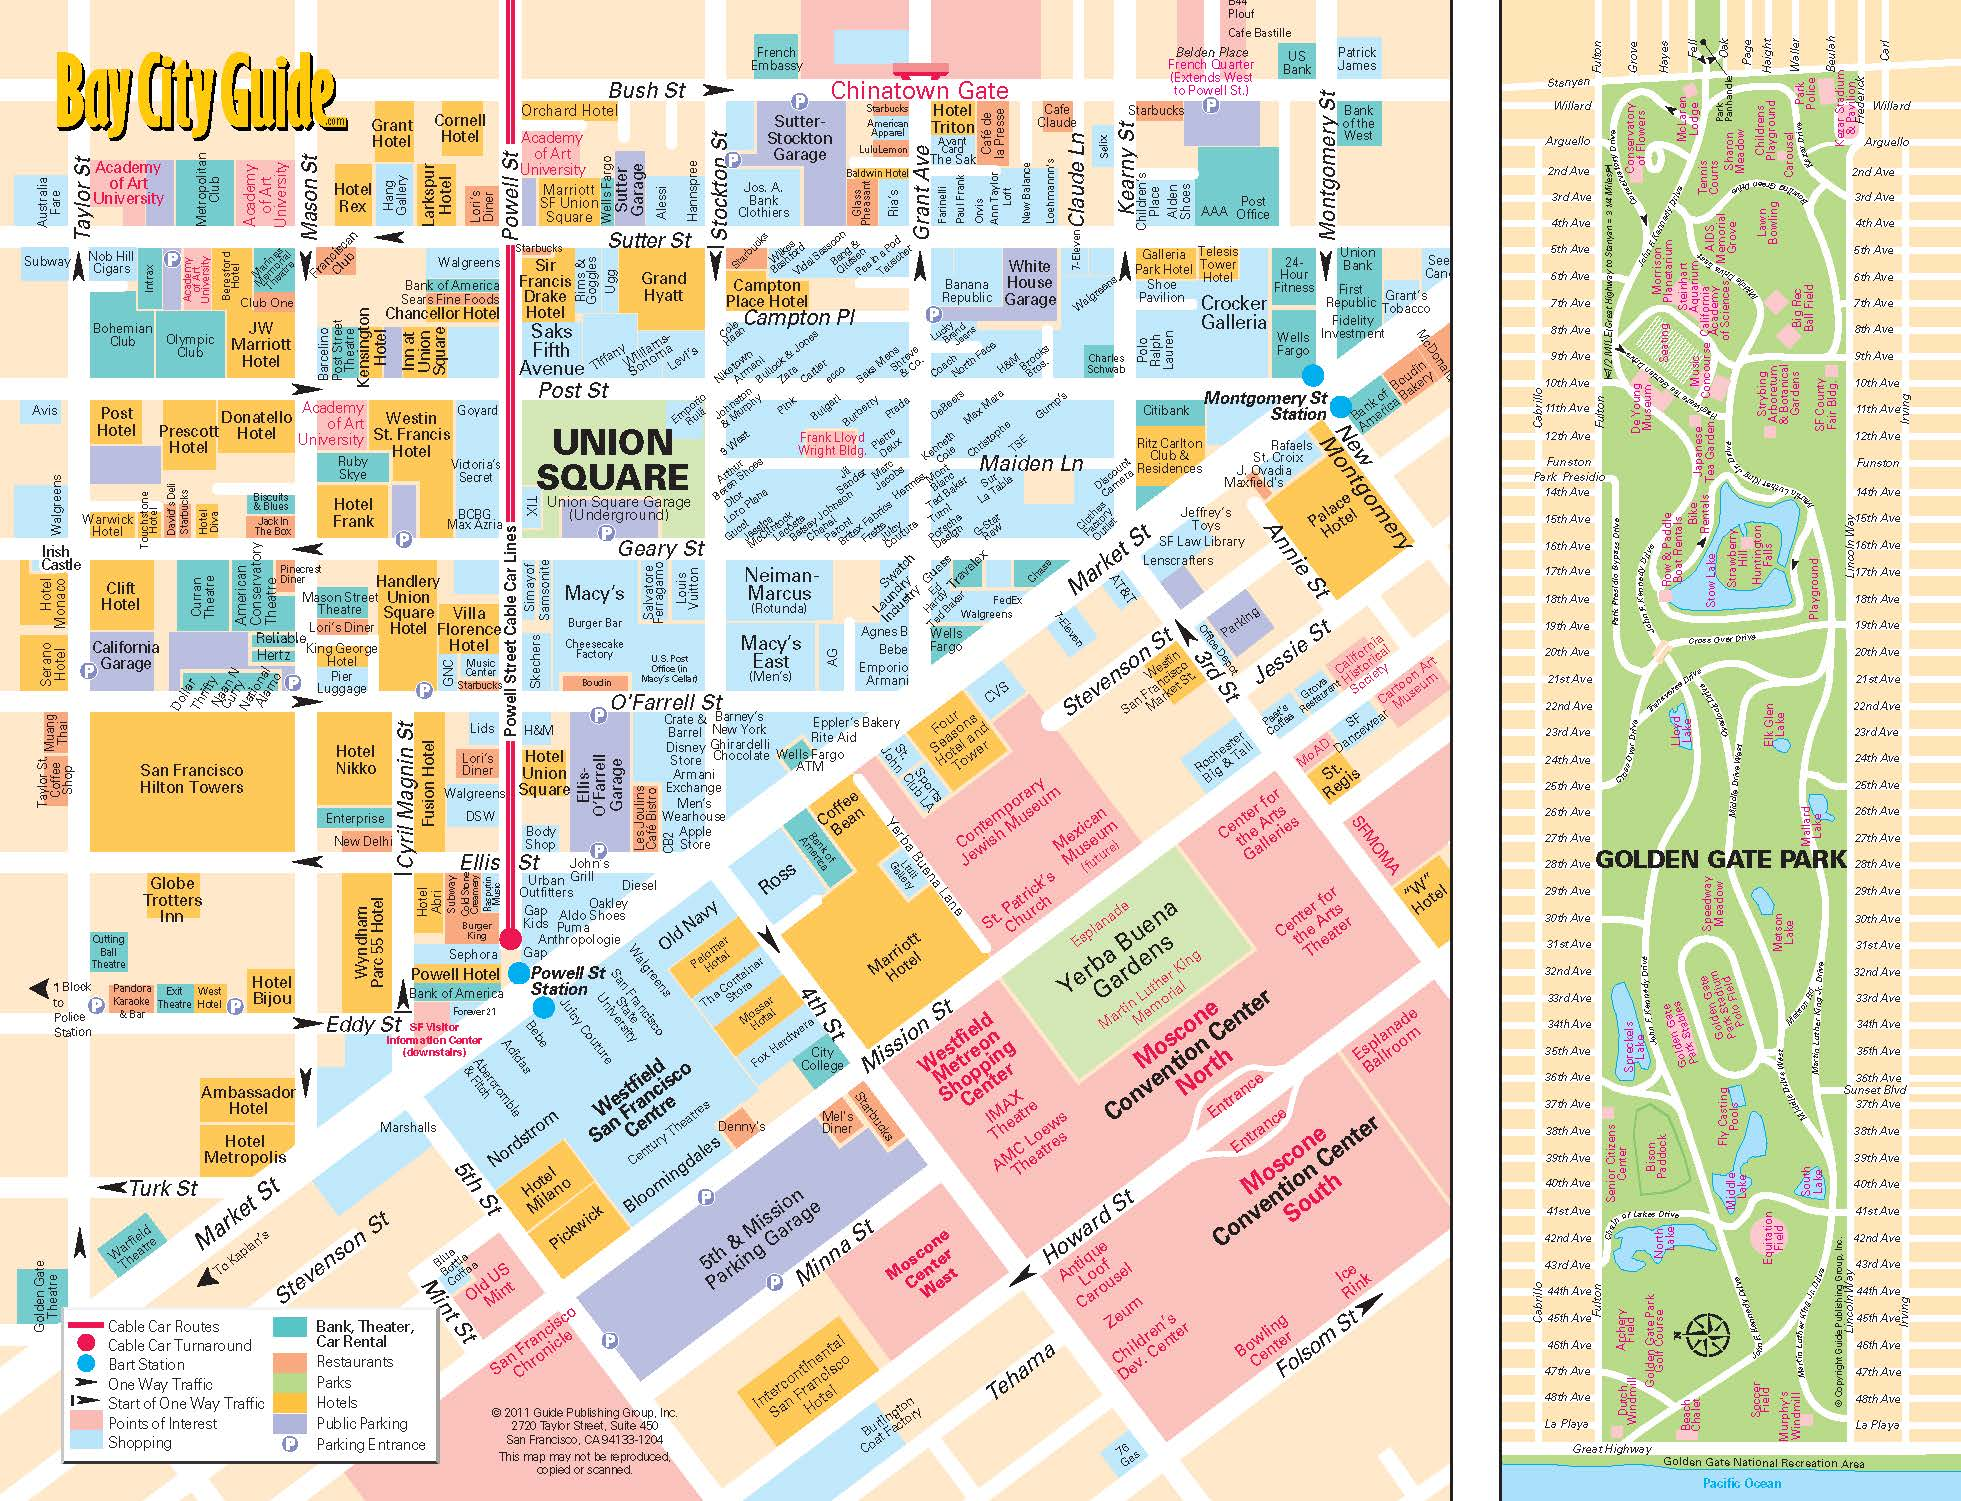 Map Of Union Square San Francisco Hotels | 2018 World's Best ... San Francisco Sightseeing Map on victoria sightseeing map, santa cruz sightseeing map, fisherman's wharf sightseeing map, hollywood los angeles sightseeing map, japanese tea garden sf map, houston sightseeing map, hong kong sightseeing map, albuquerque sightseeing map, chicago sightseeing map, sf city map, bergen sightseeing map, boston sightseeing map, philadelphia sightseeing map, brooklyn sightseeing map, new jersey sightseeing map, london sightseeing map, california sightseeing map, charleston sightseeing map, tennessee sightseeing map, kansas city sightseeing map,